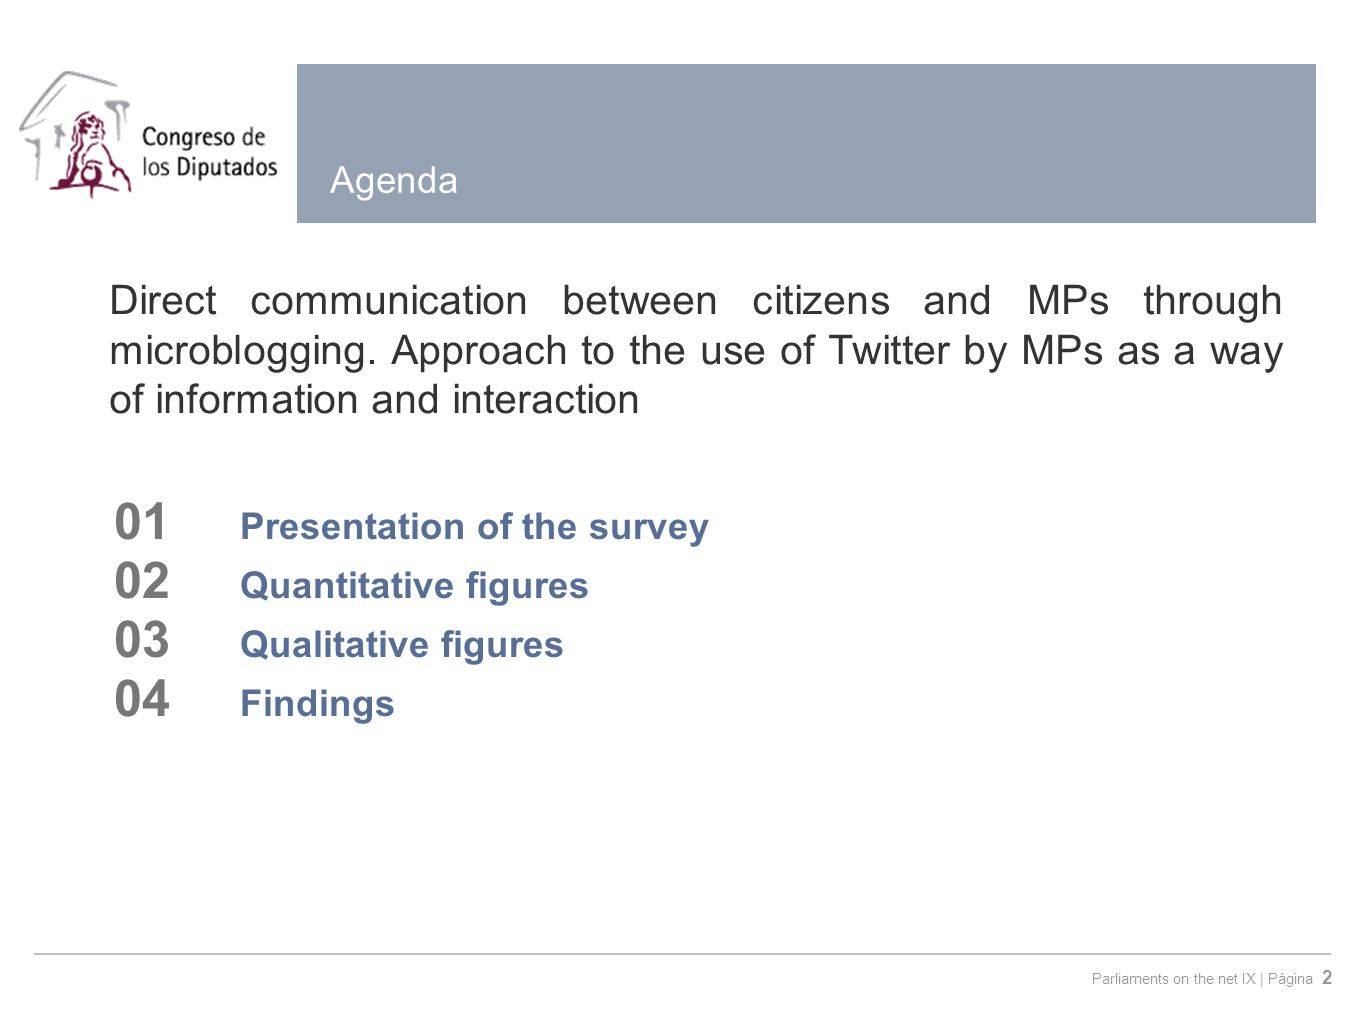 Parliaments on the net IX | Página 2 Agenda 01 Presentation of the survey 02 Quantitative figures 03 Qualitative figures 04 Findings Direct communication between citizens and MPs through microblogging.